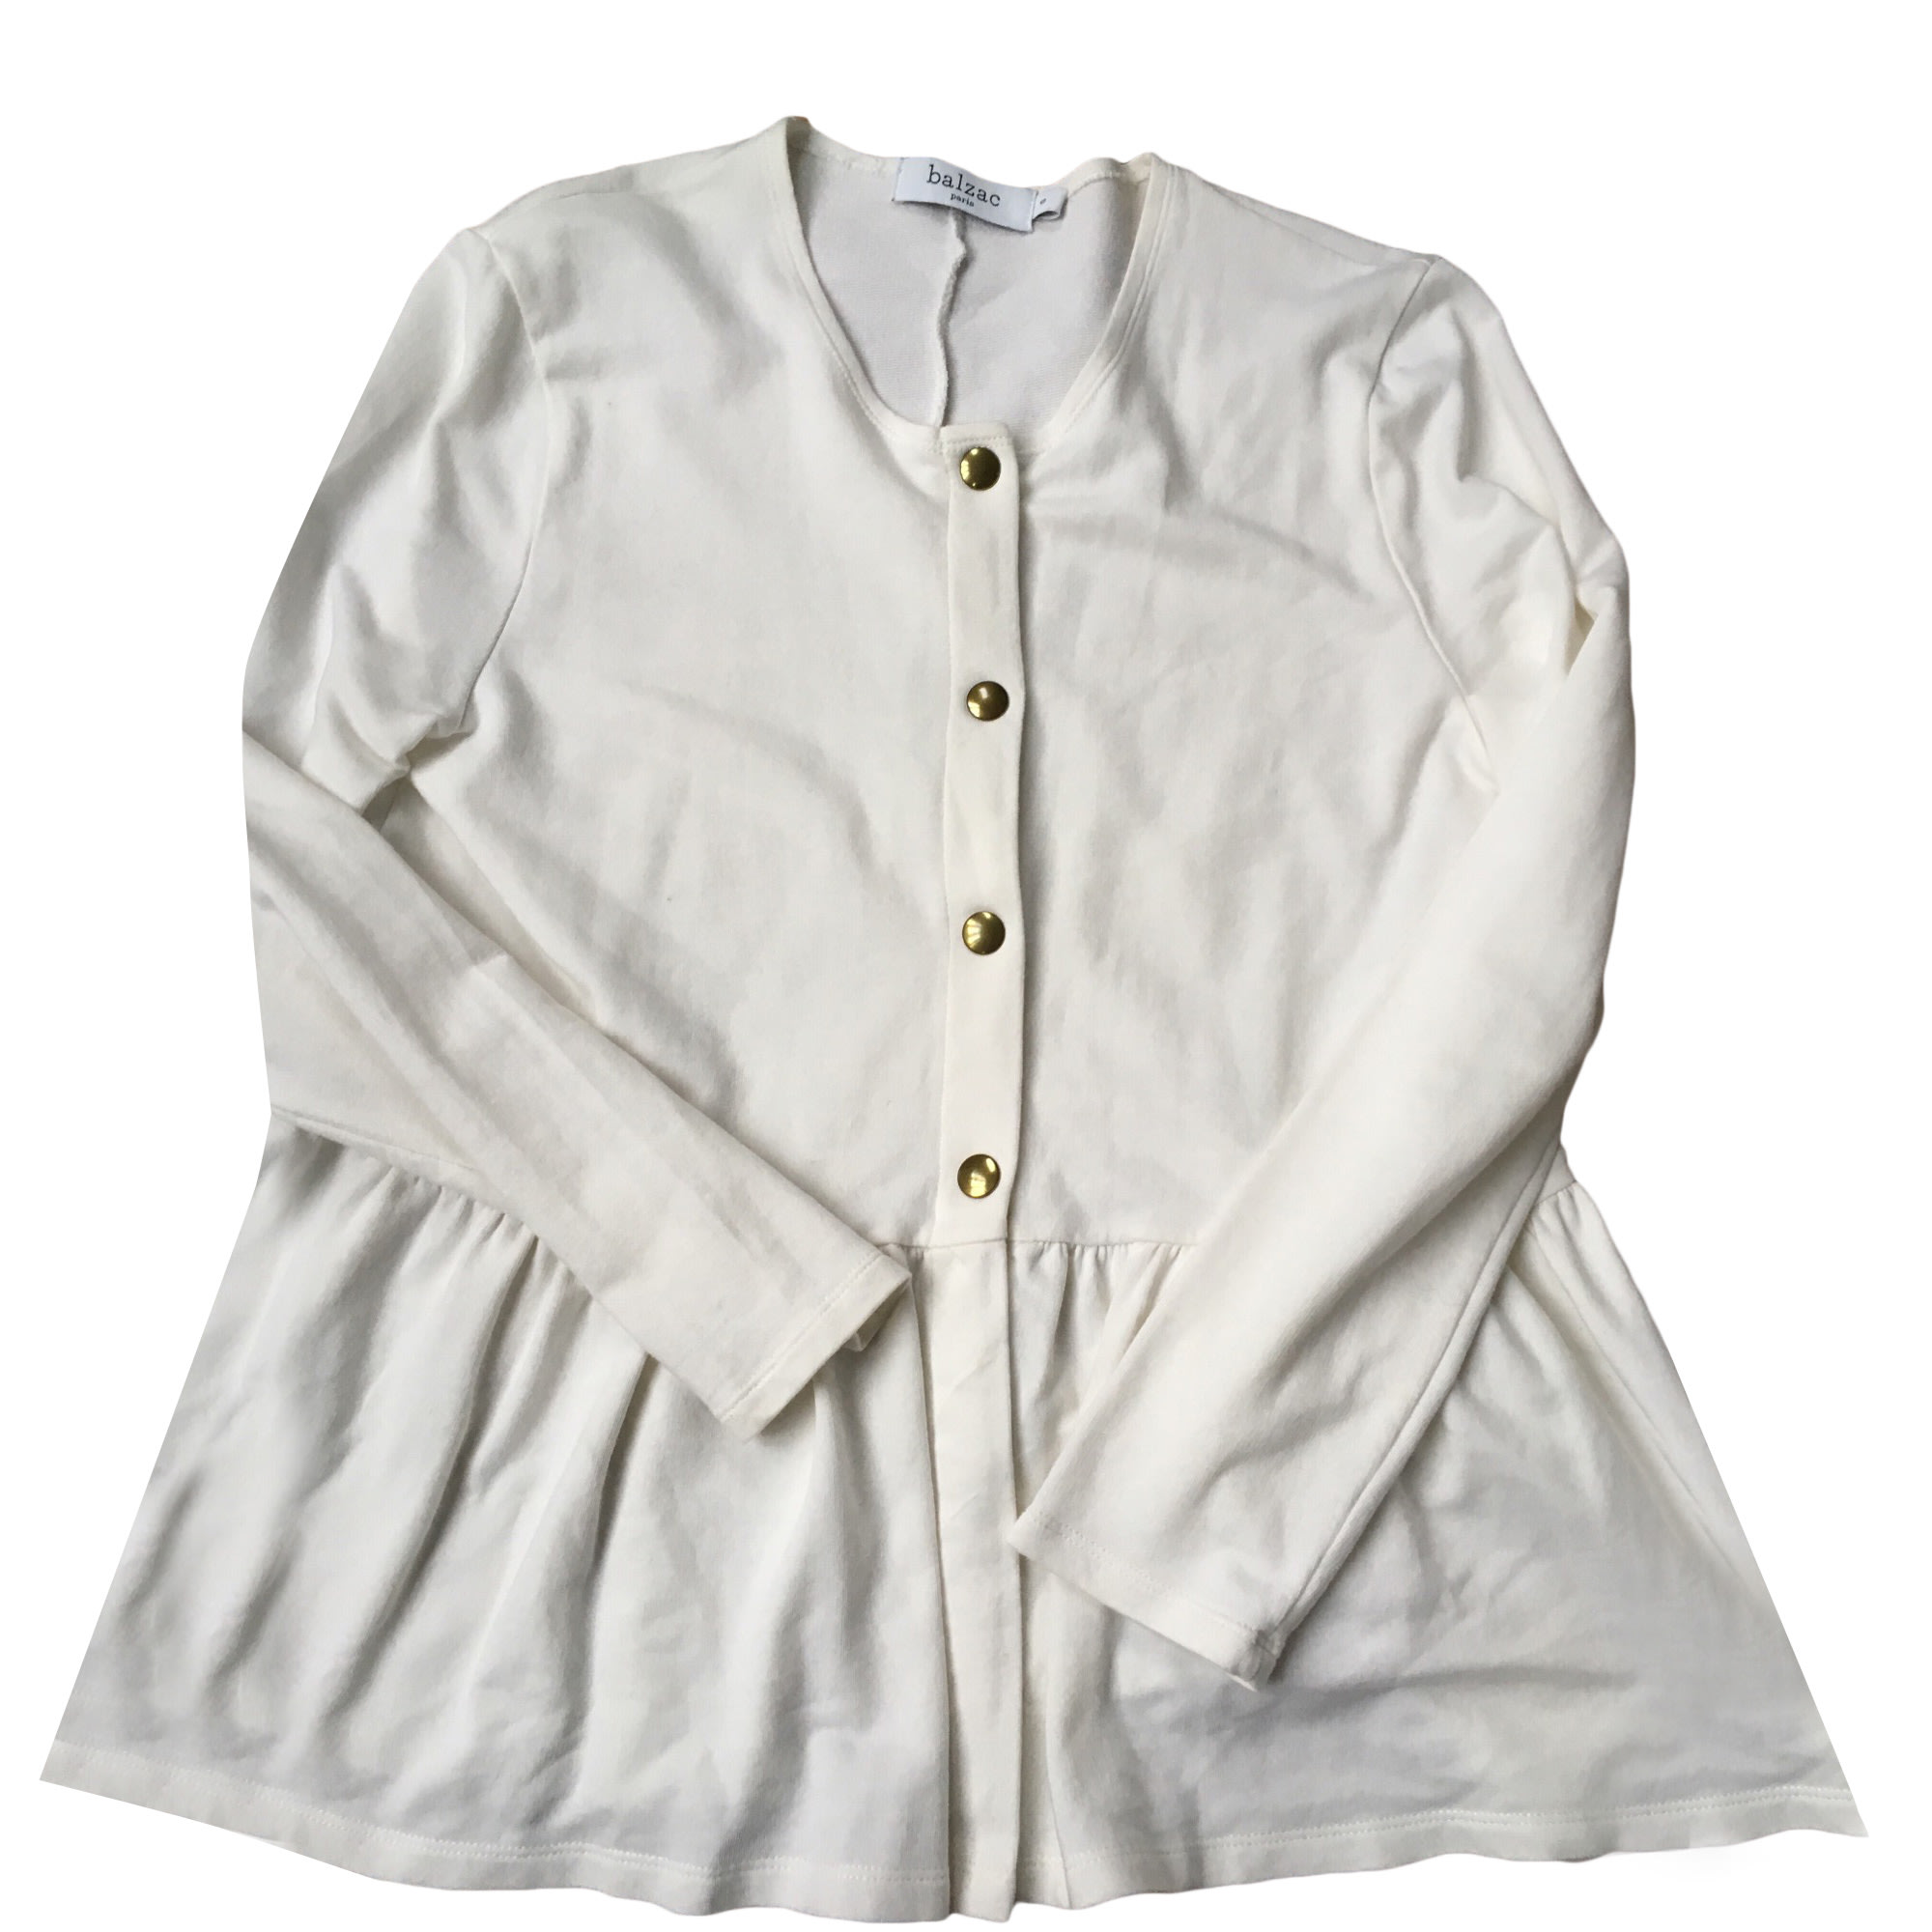 Vest, Cardigan BALZAC PARIS White, off-white, ecru